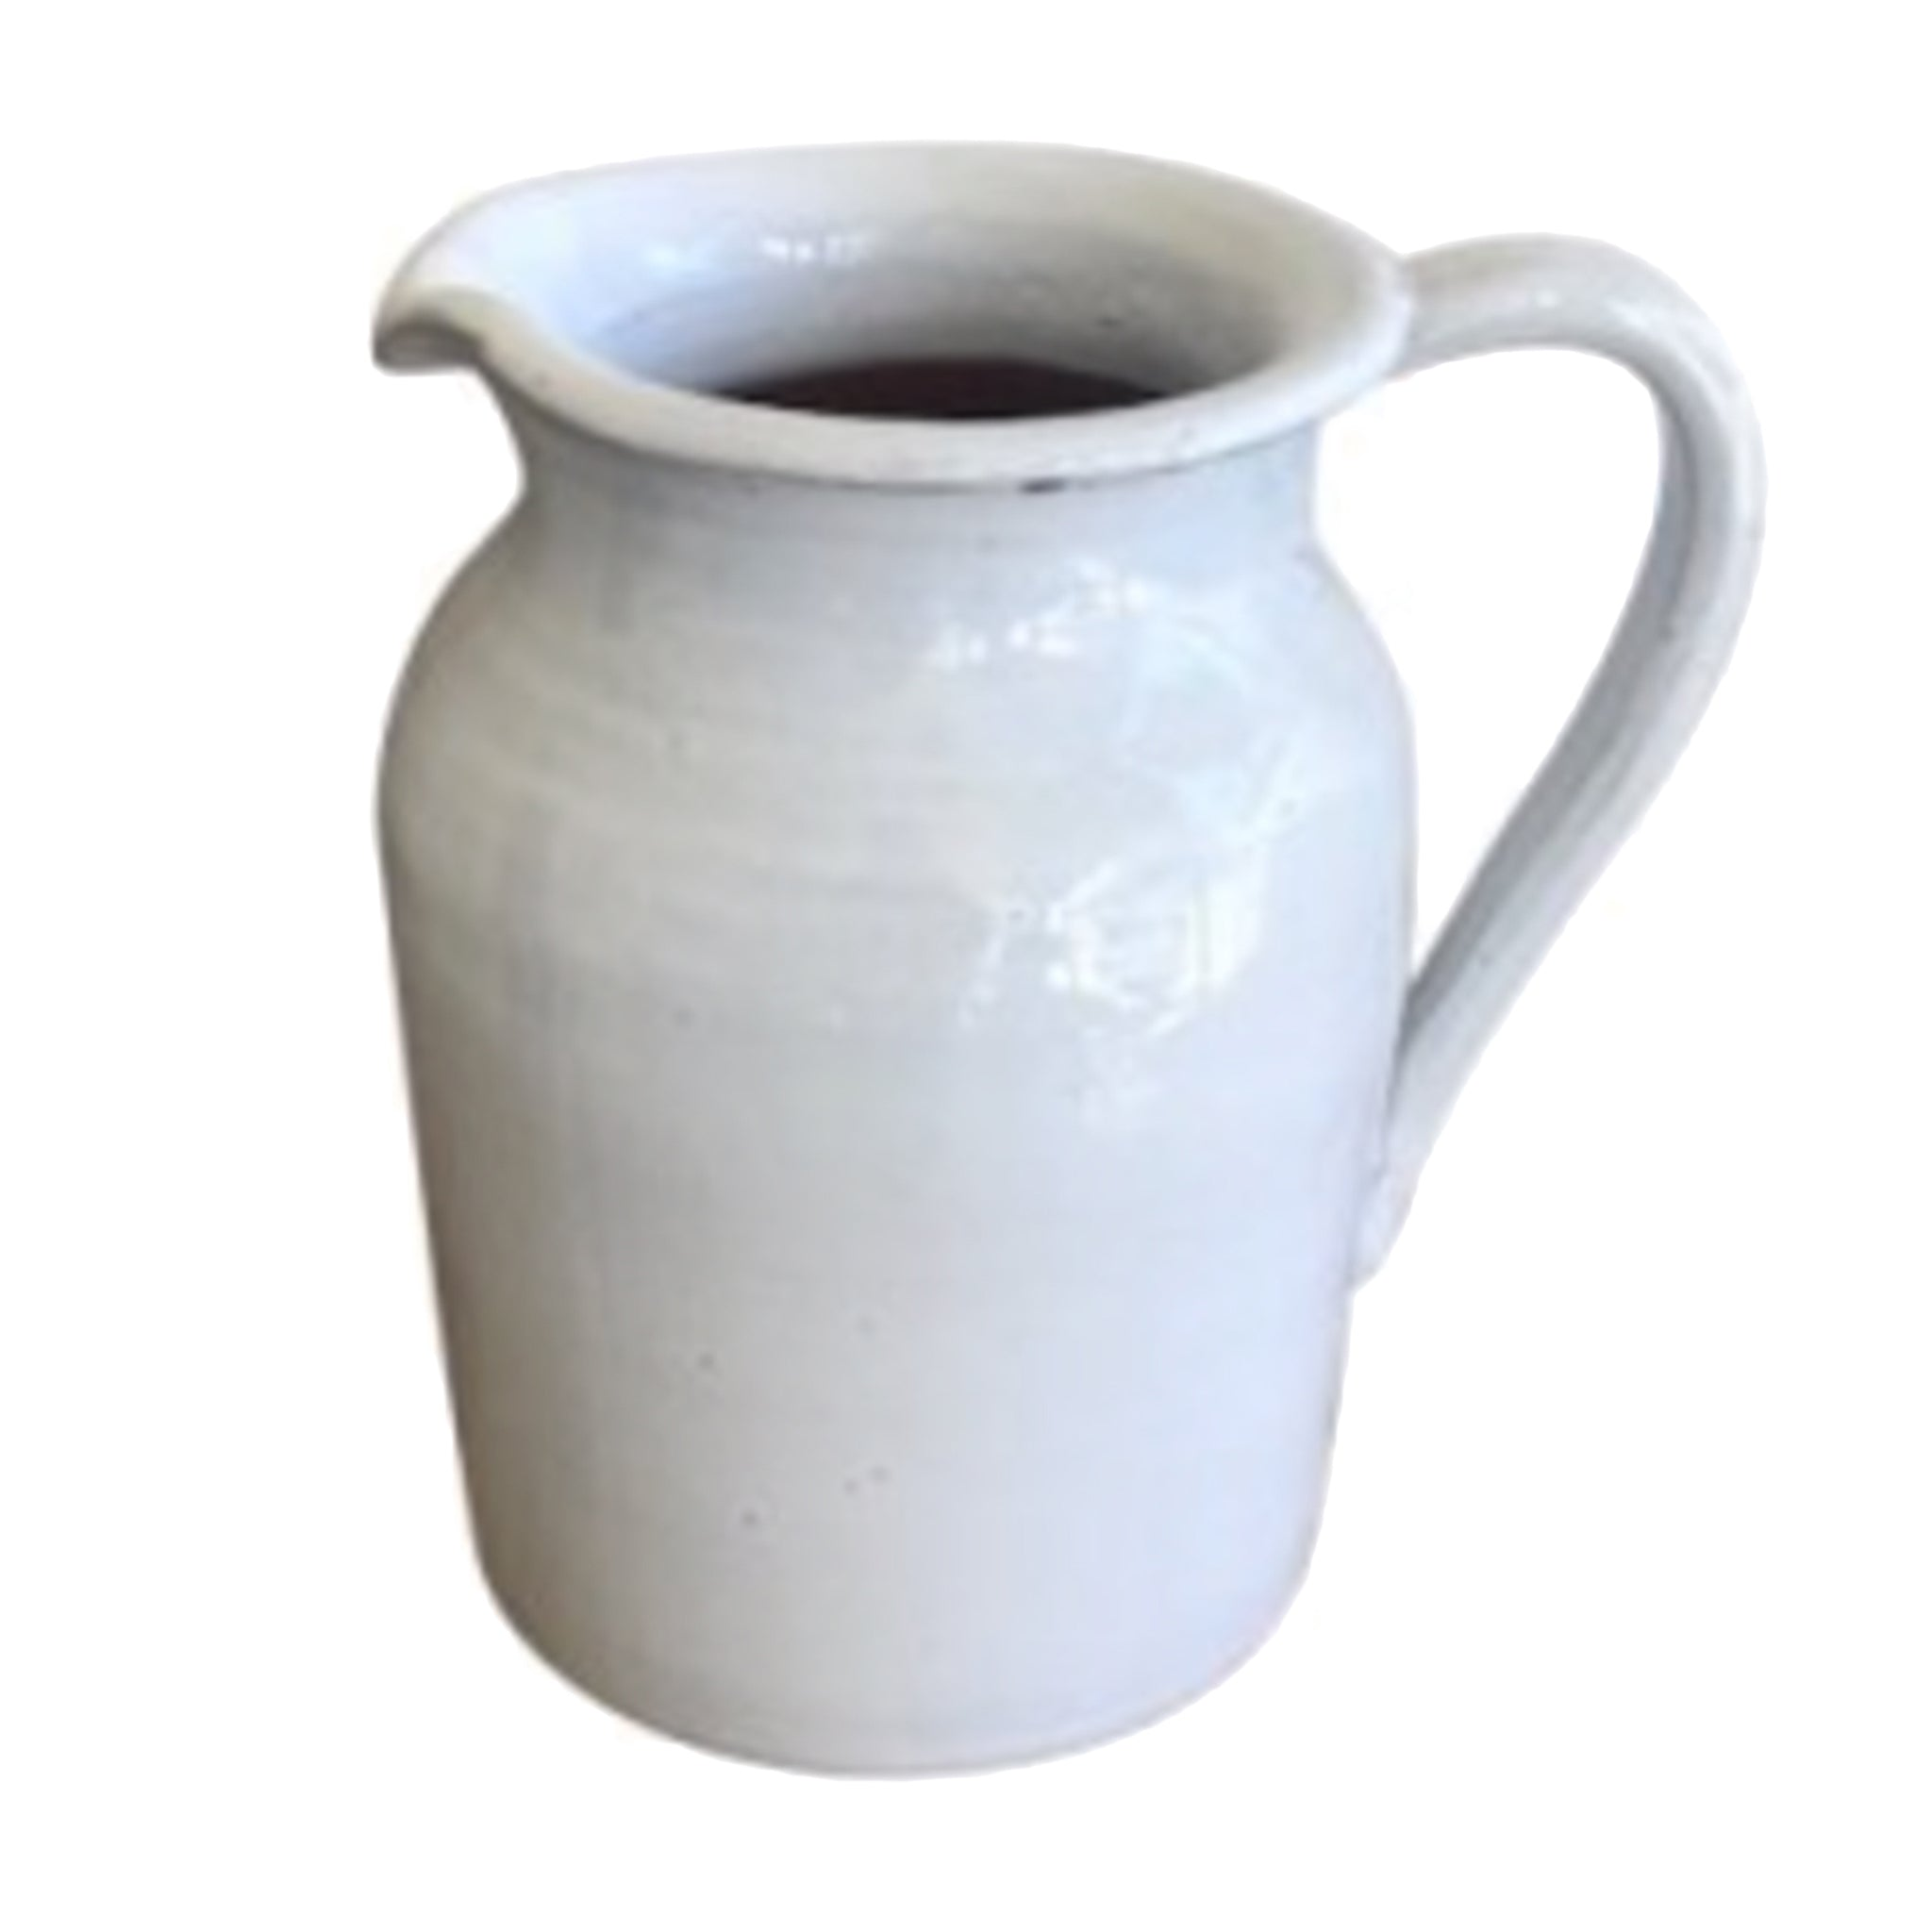 Devon Jug - Small